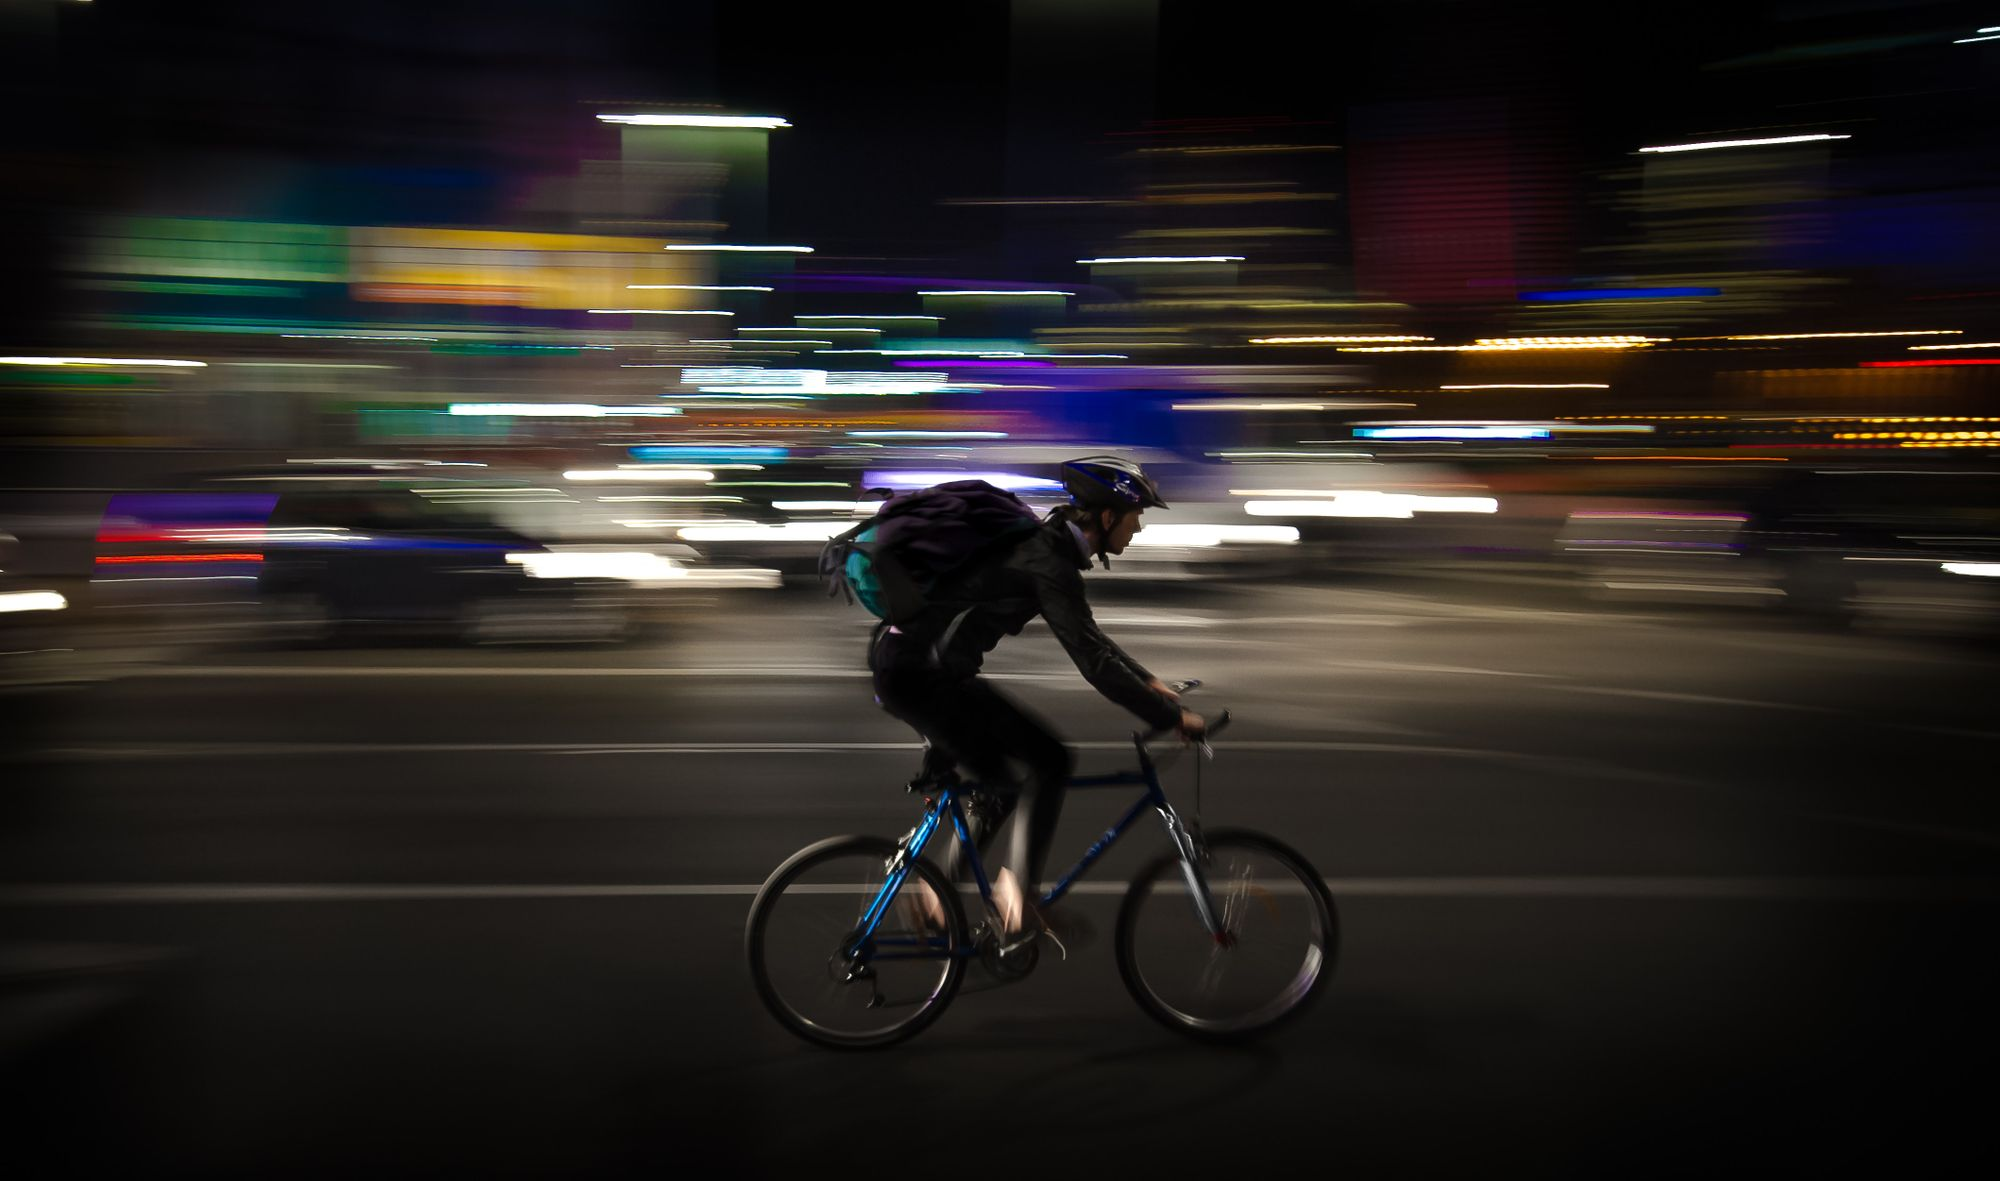 How are fashion + gadgets enhancing urban cycling?